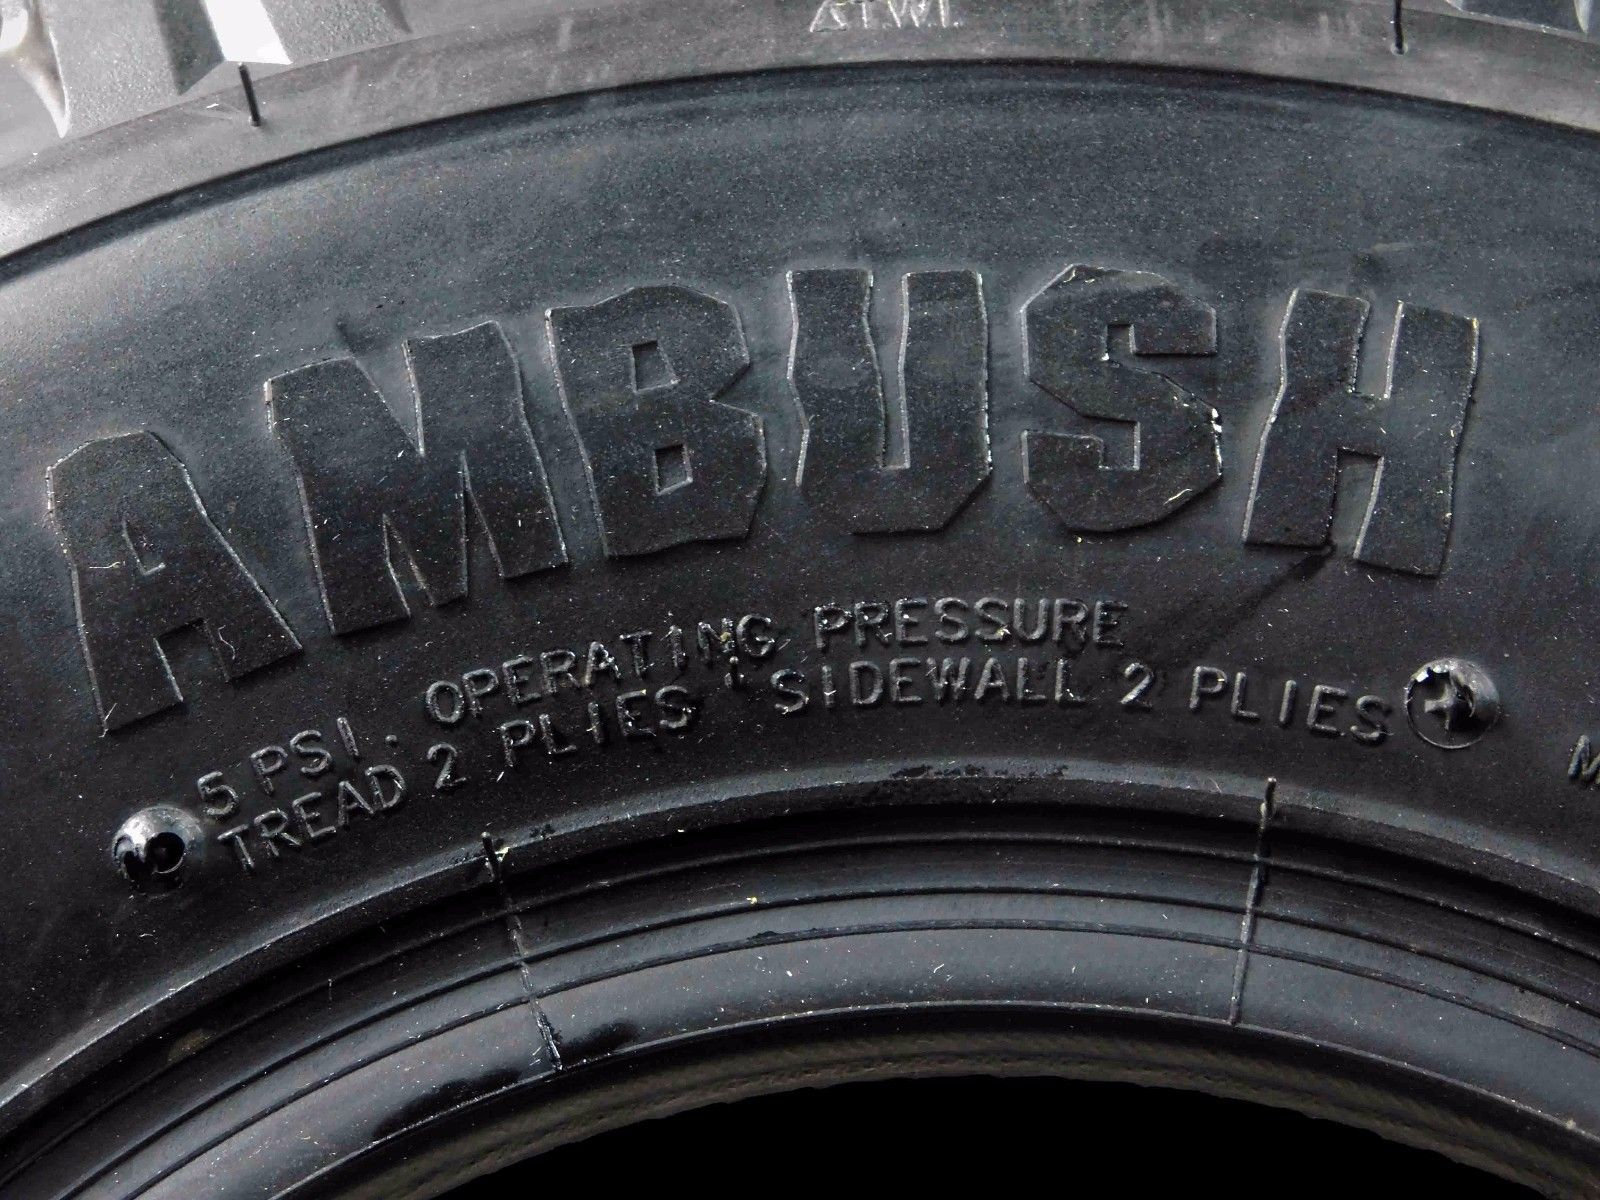 Ambush-20x10-9-ATV-Tires-2-Pack-Rear-4ply-image-4